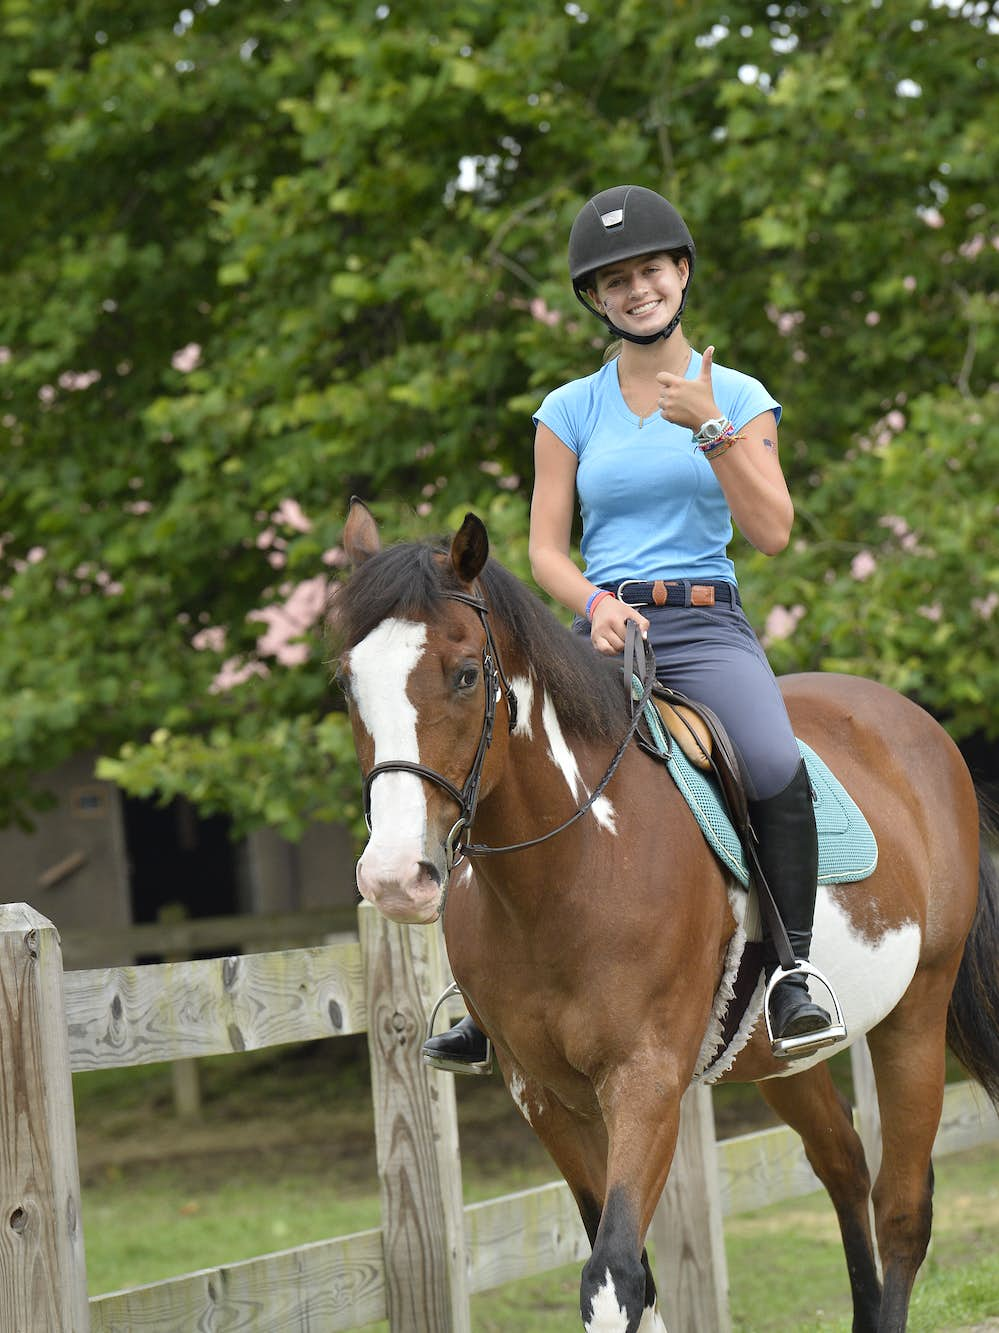 Horseback riding, gardening, and puppies at summer camp